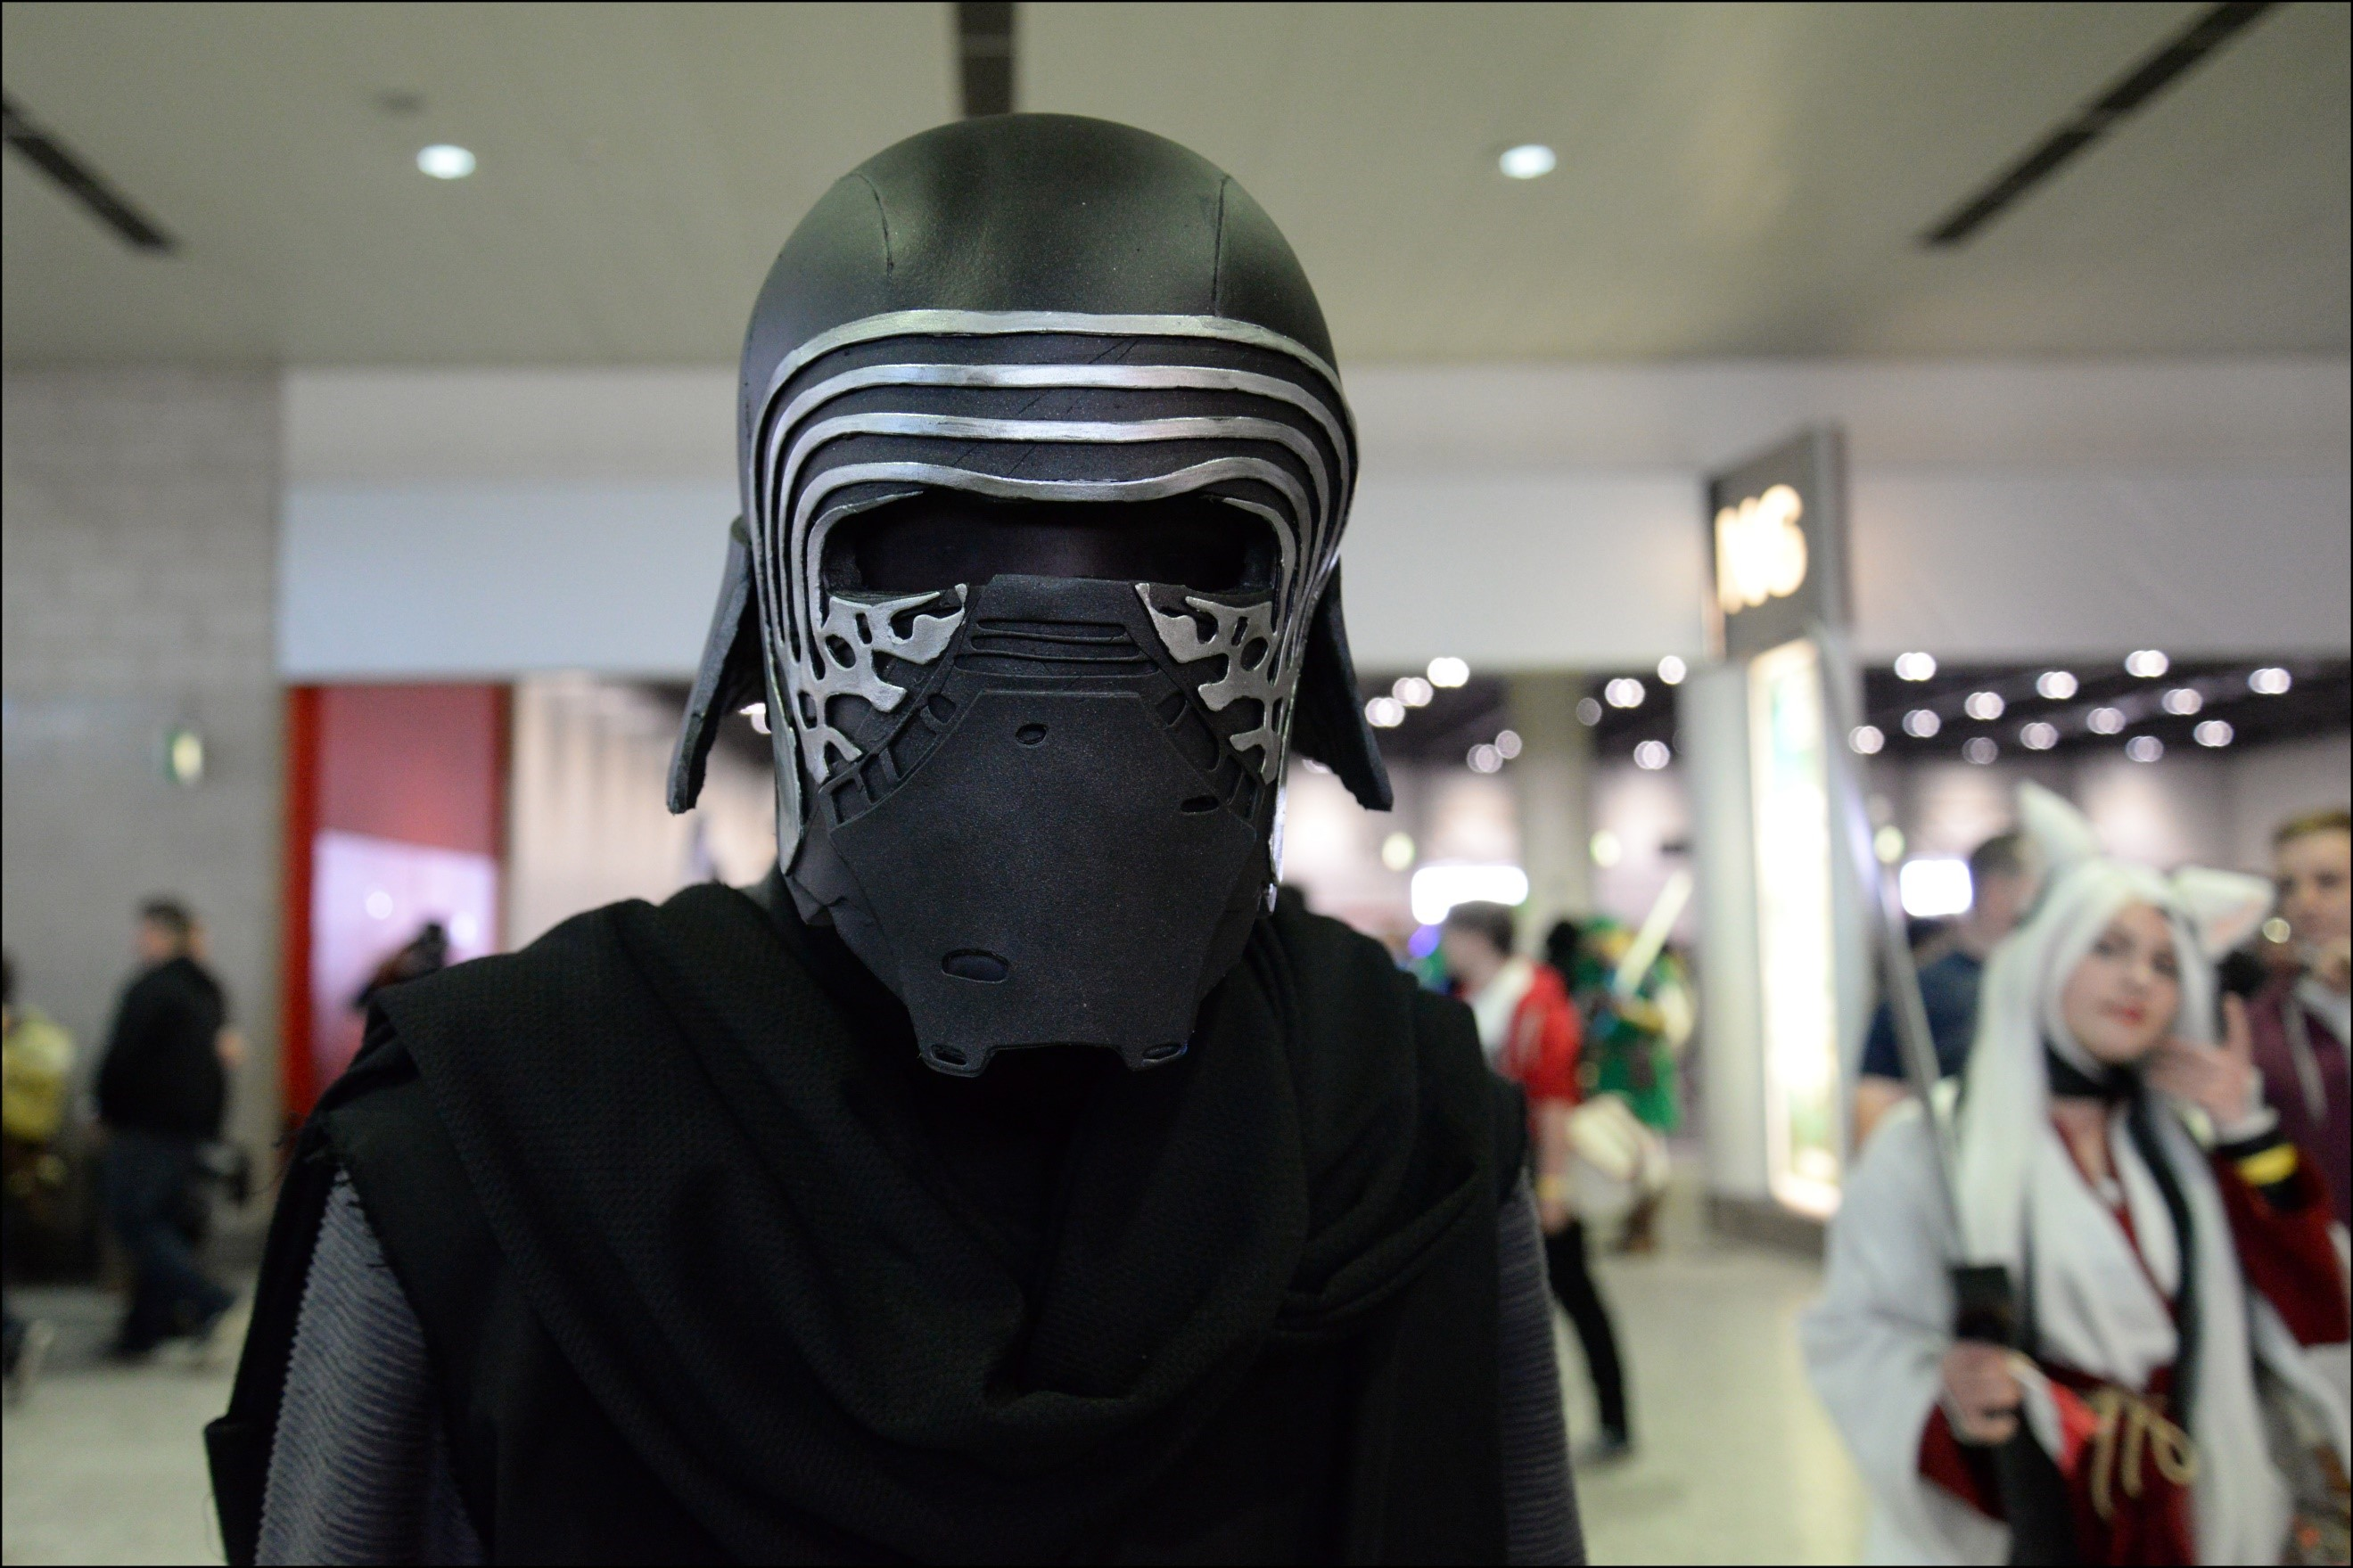 This is a costume of Kylo Ren